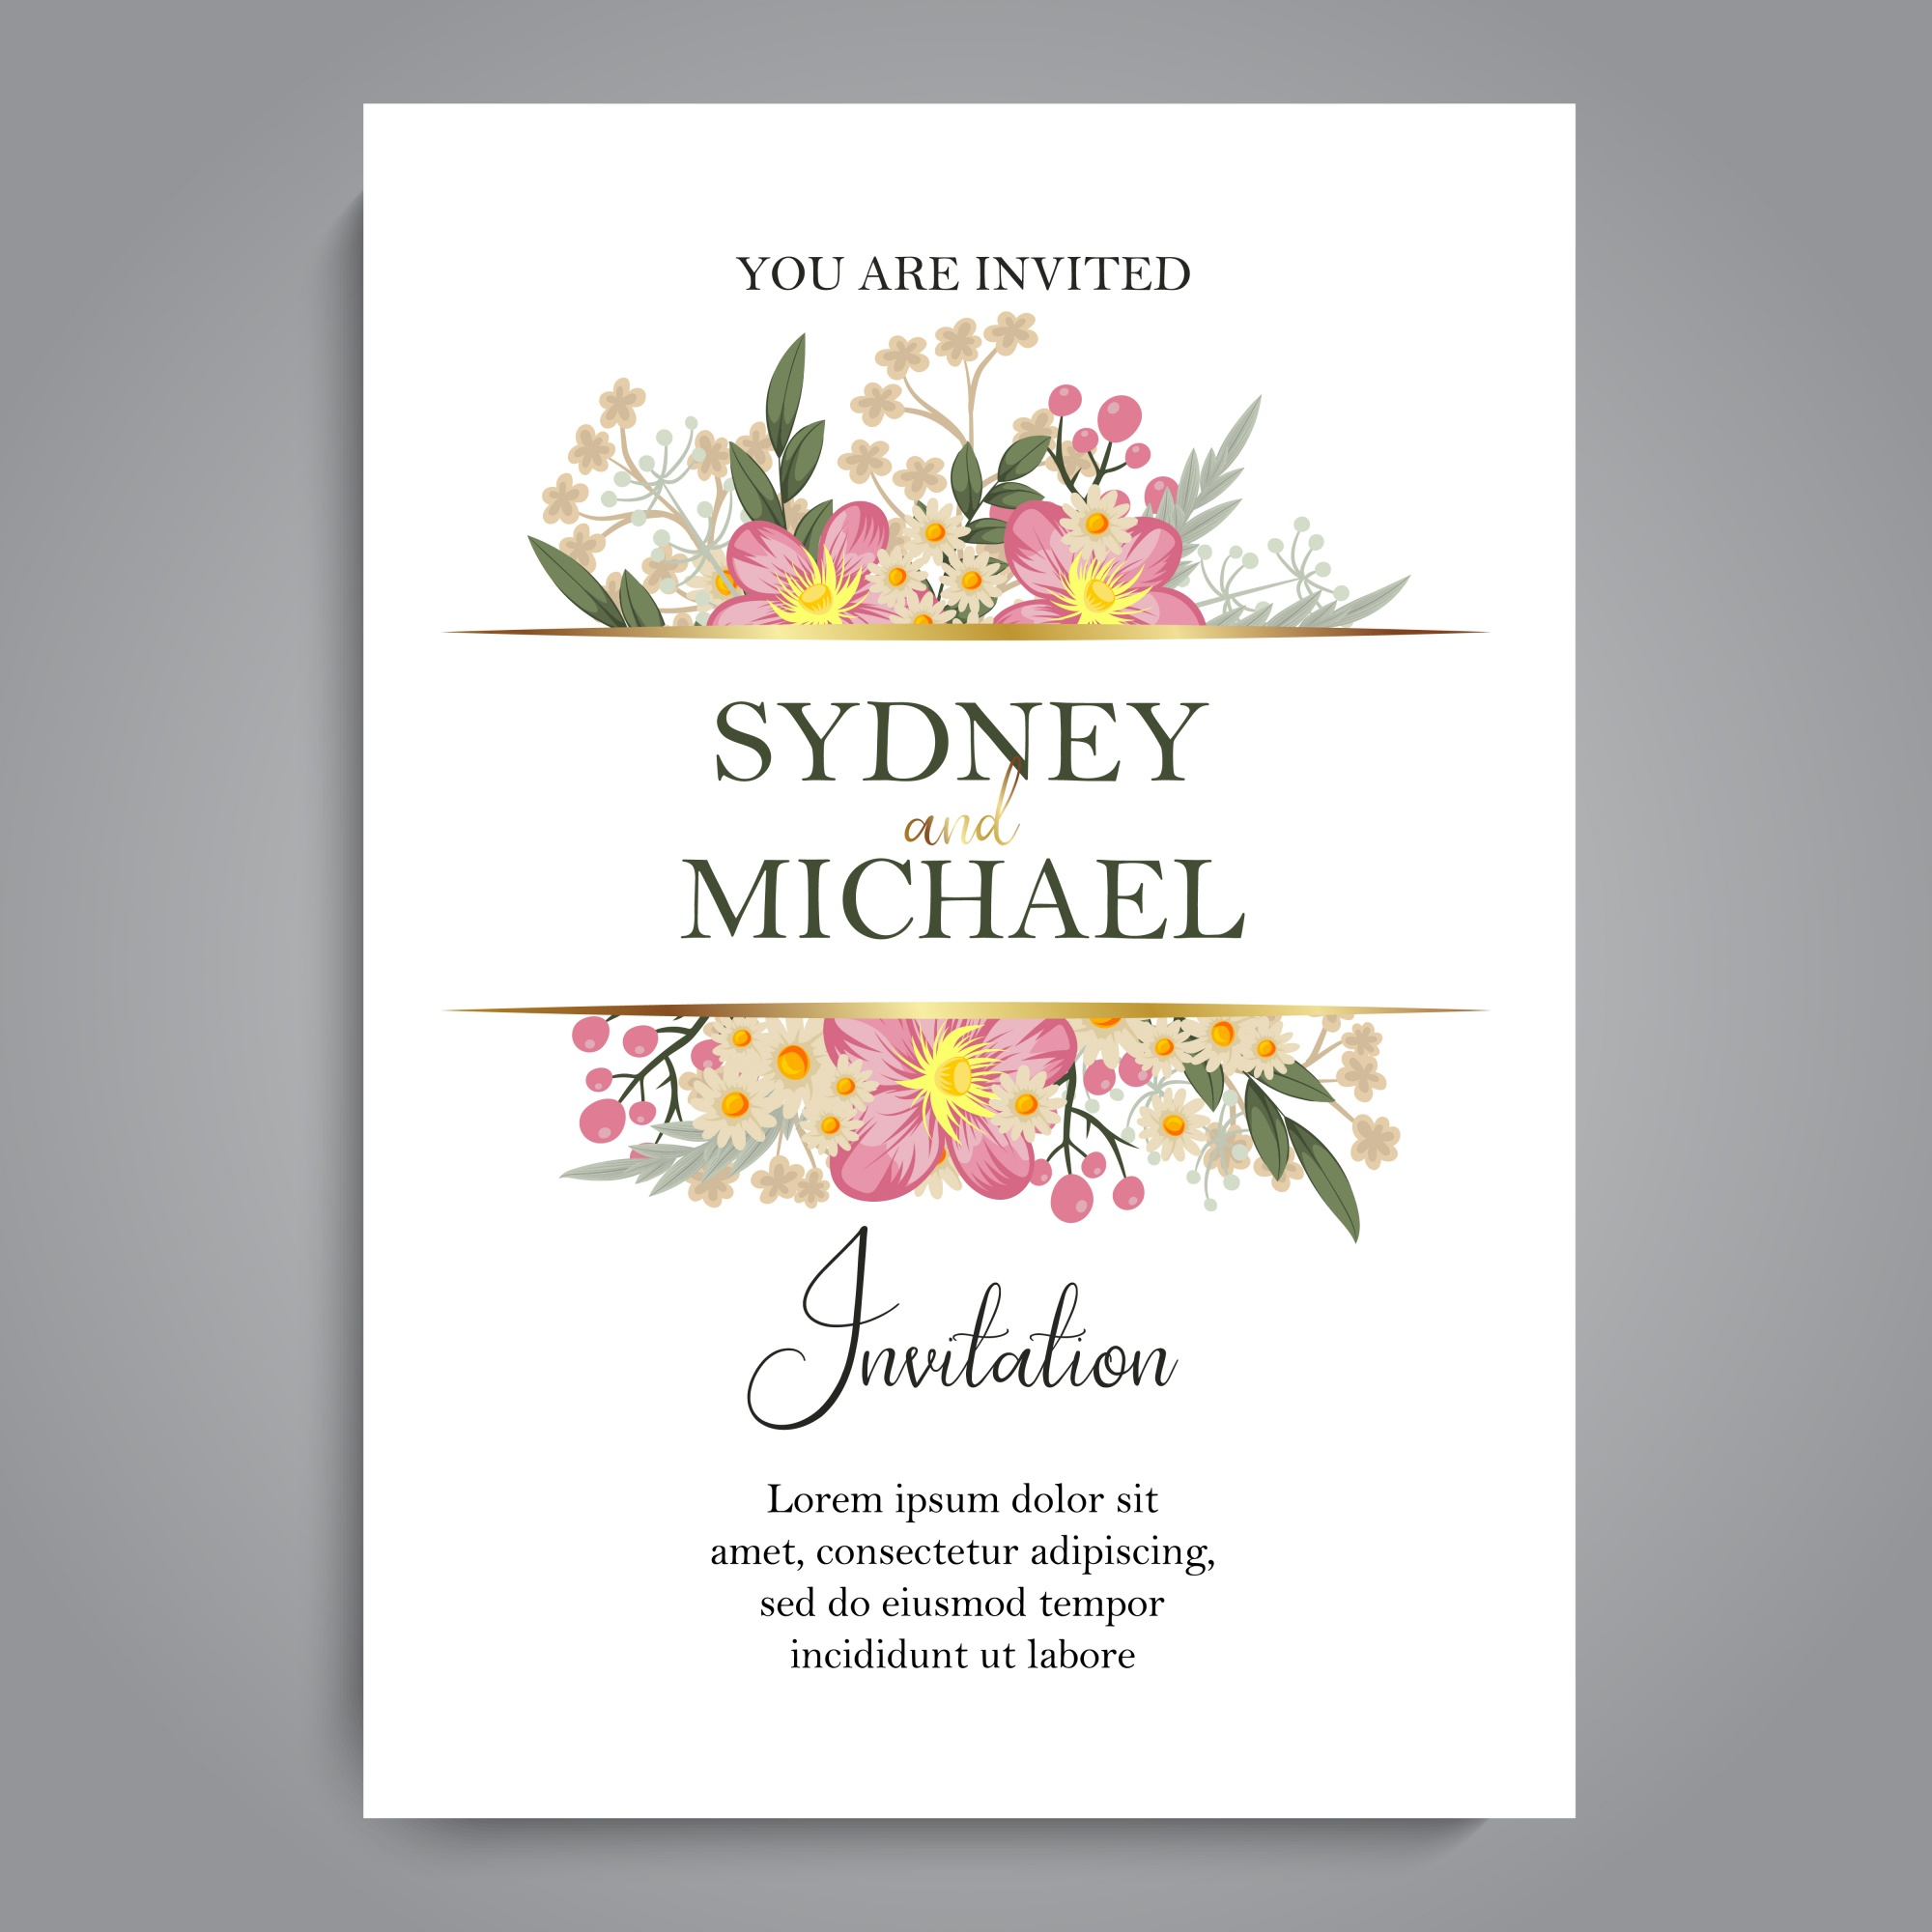 Wedding invitation card suite with flower templates